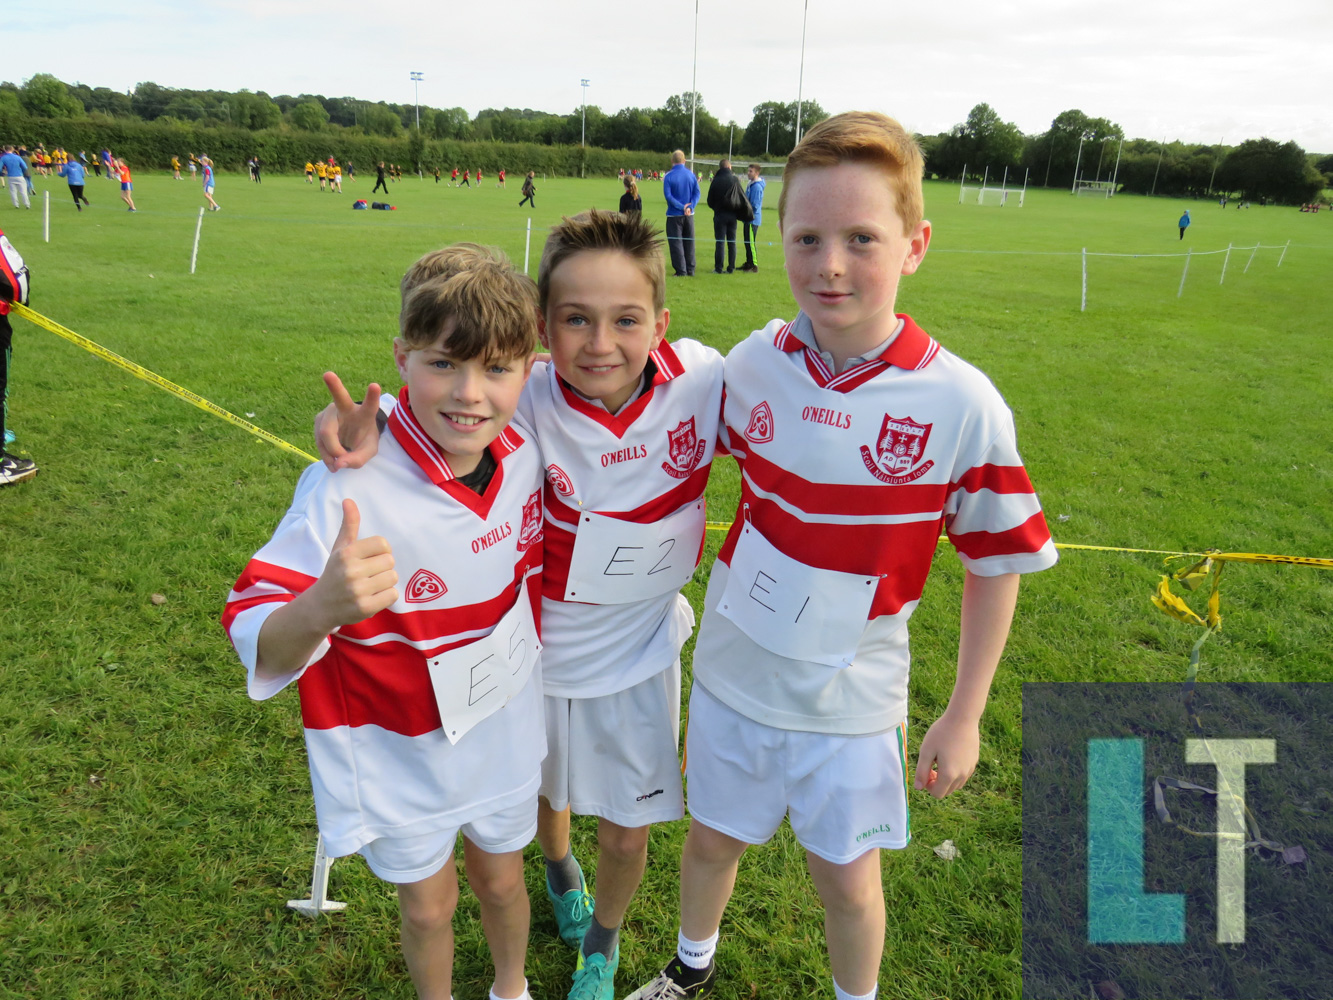 Competitors at the Laois Primary Schools Cross Country